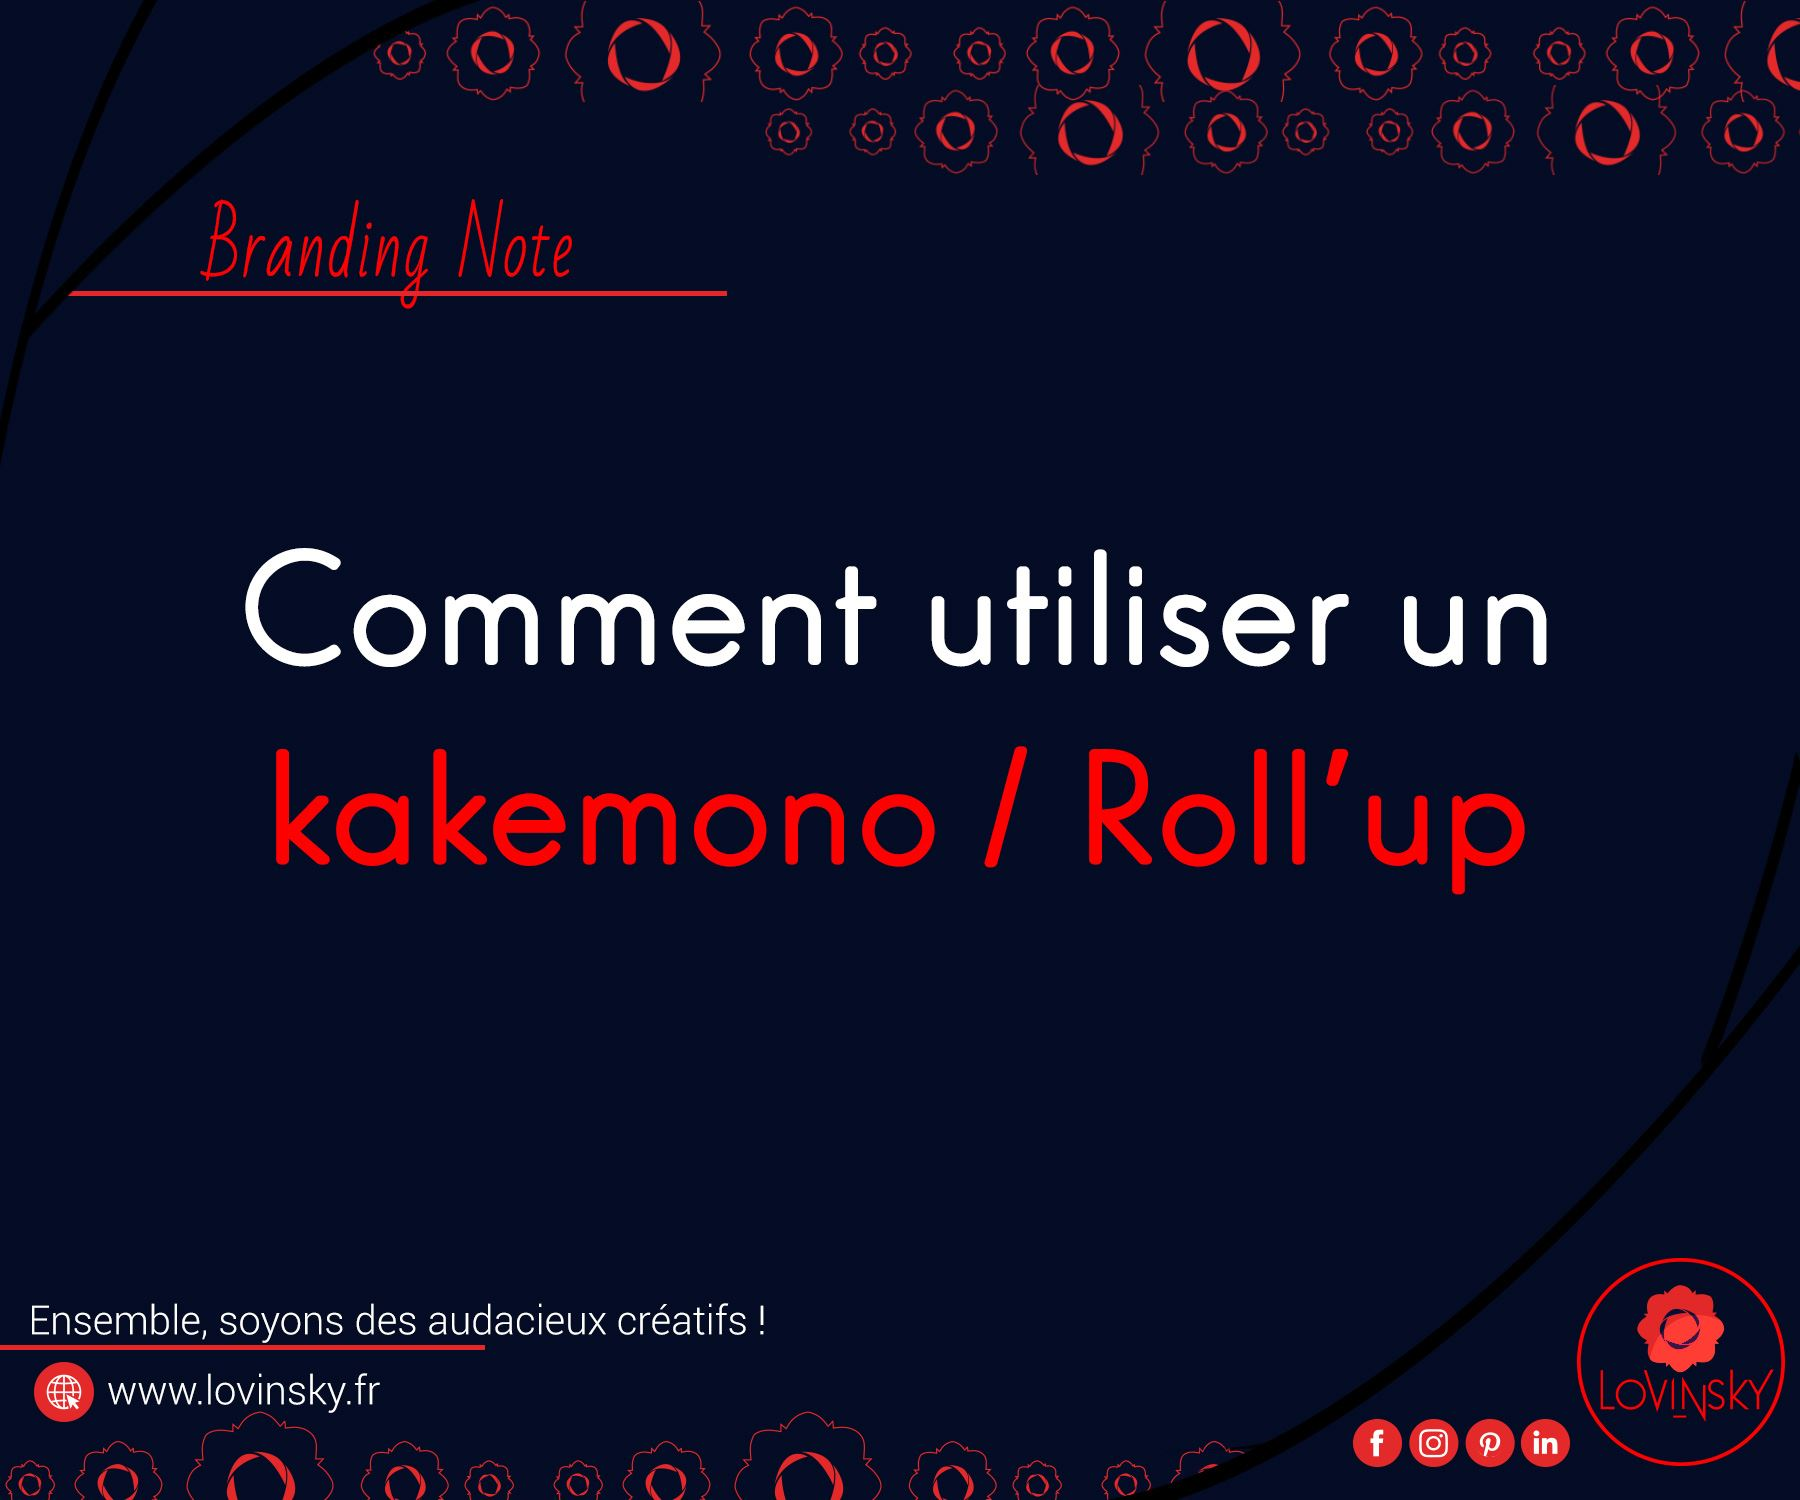 Comment utiliser un kakemono / Roll'up